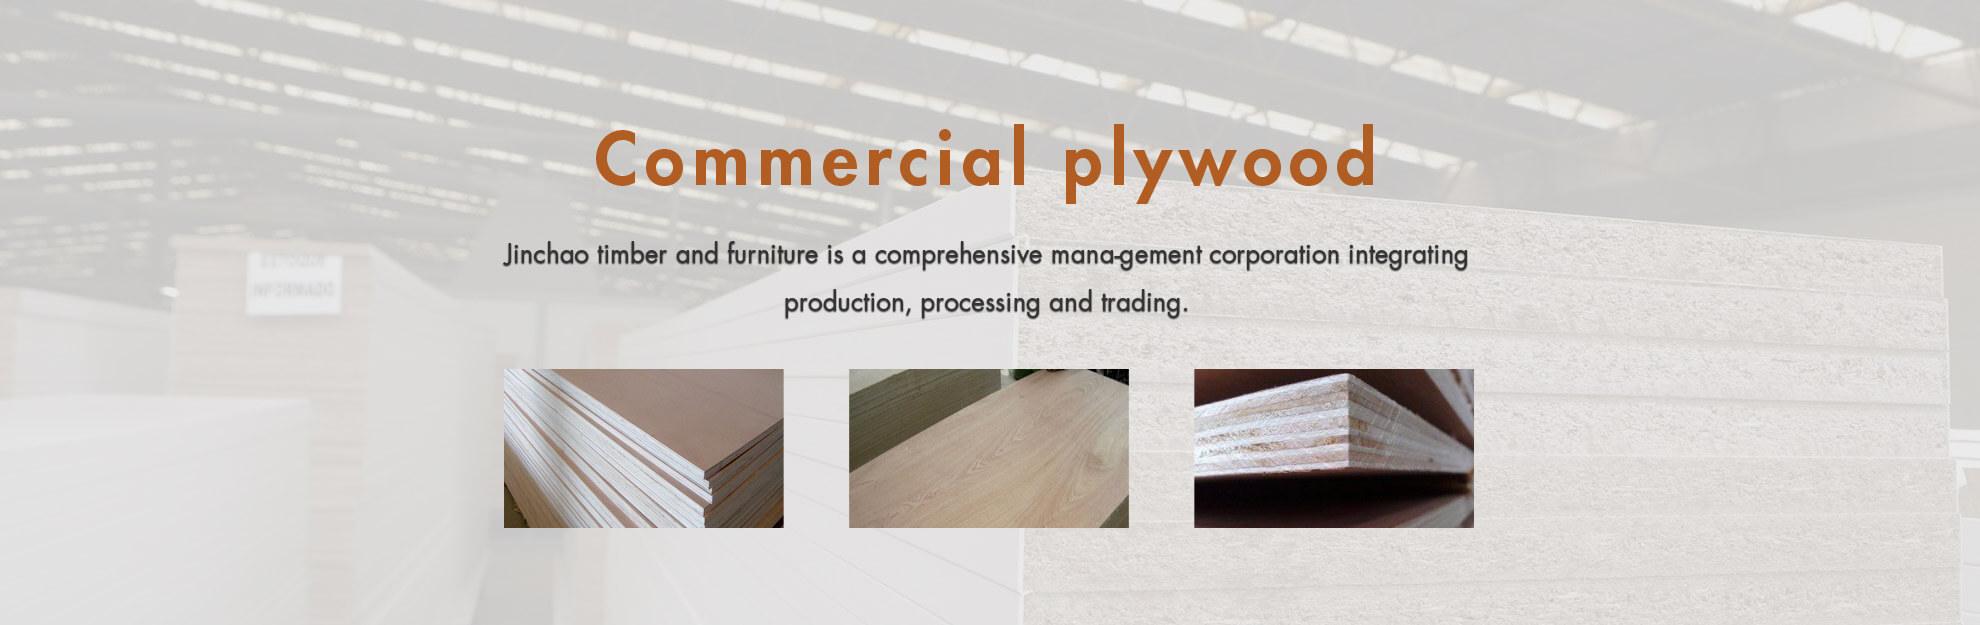 Commercia Plywood